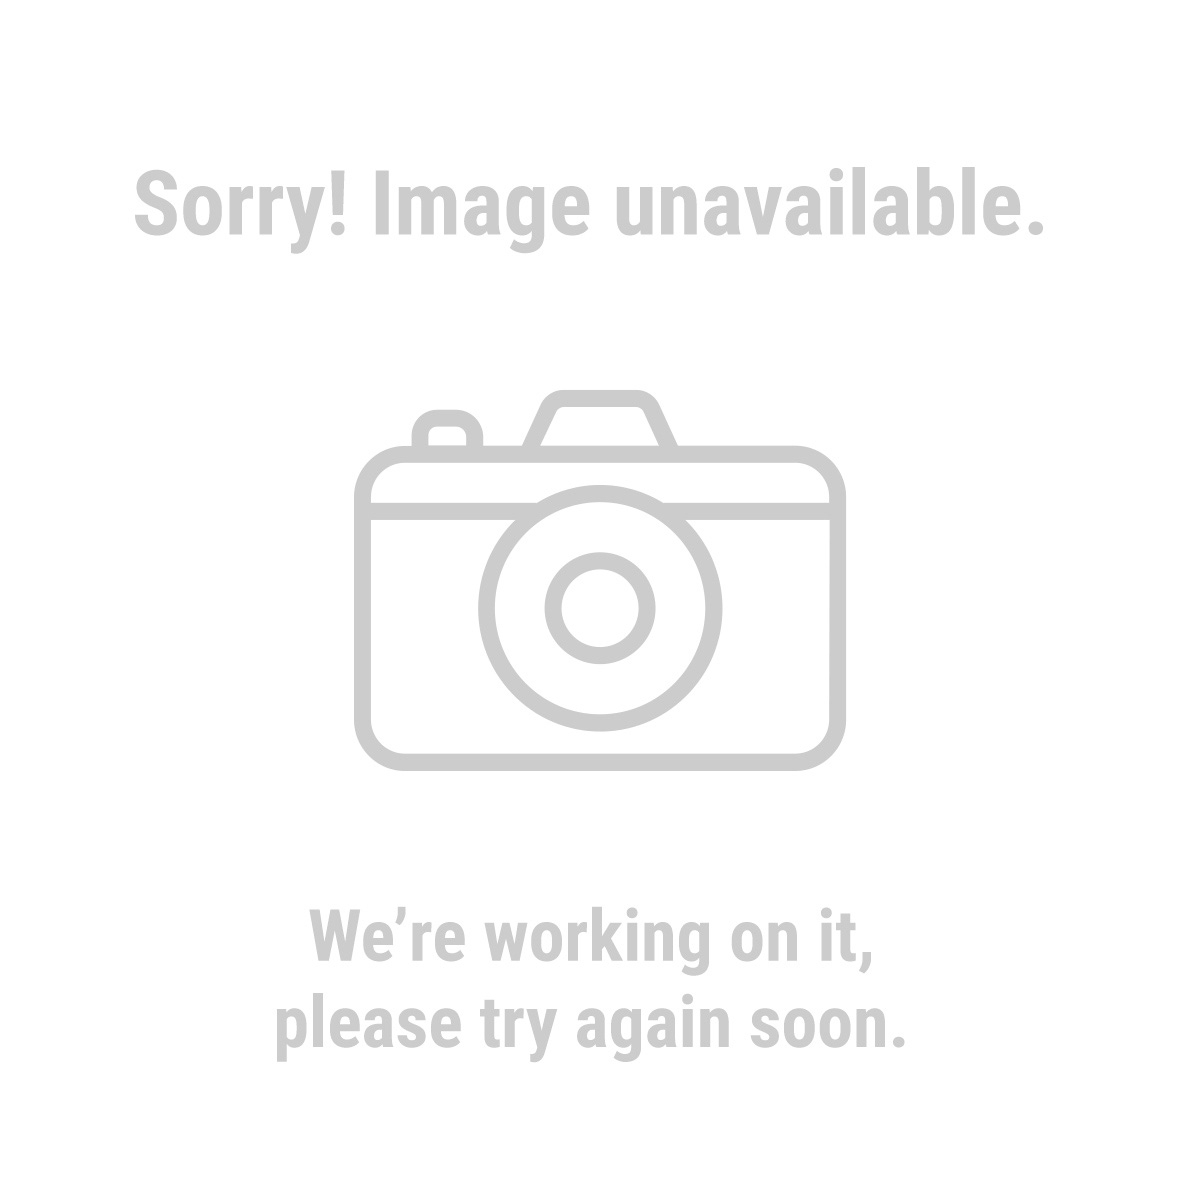 Haul-Master 66187 250 Lb. Truck Ladder Rack